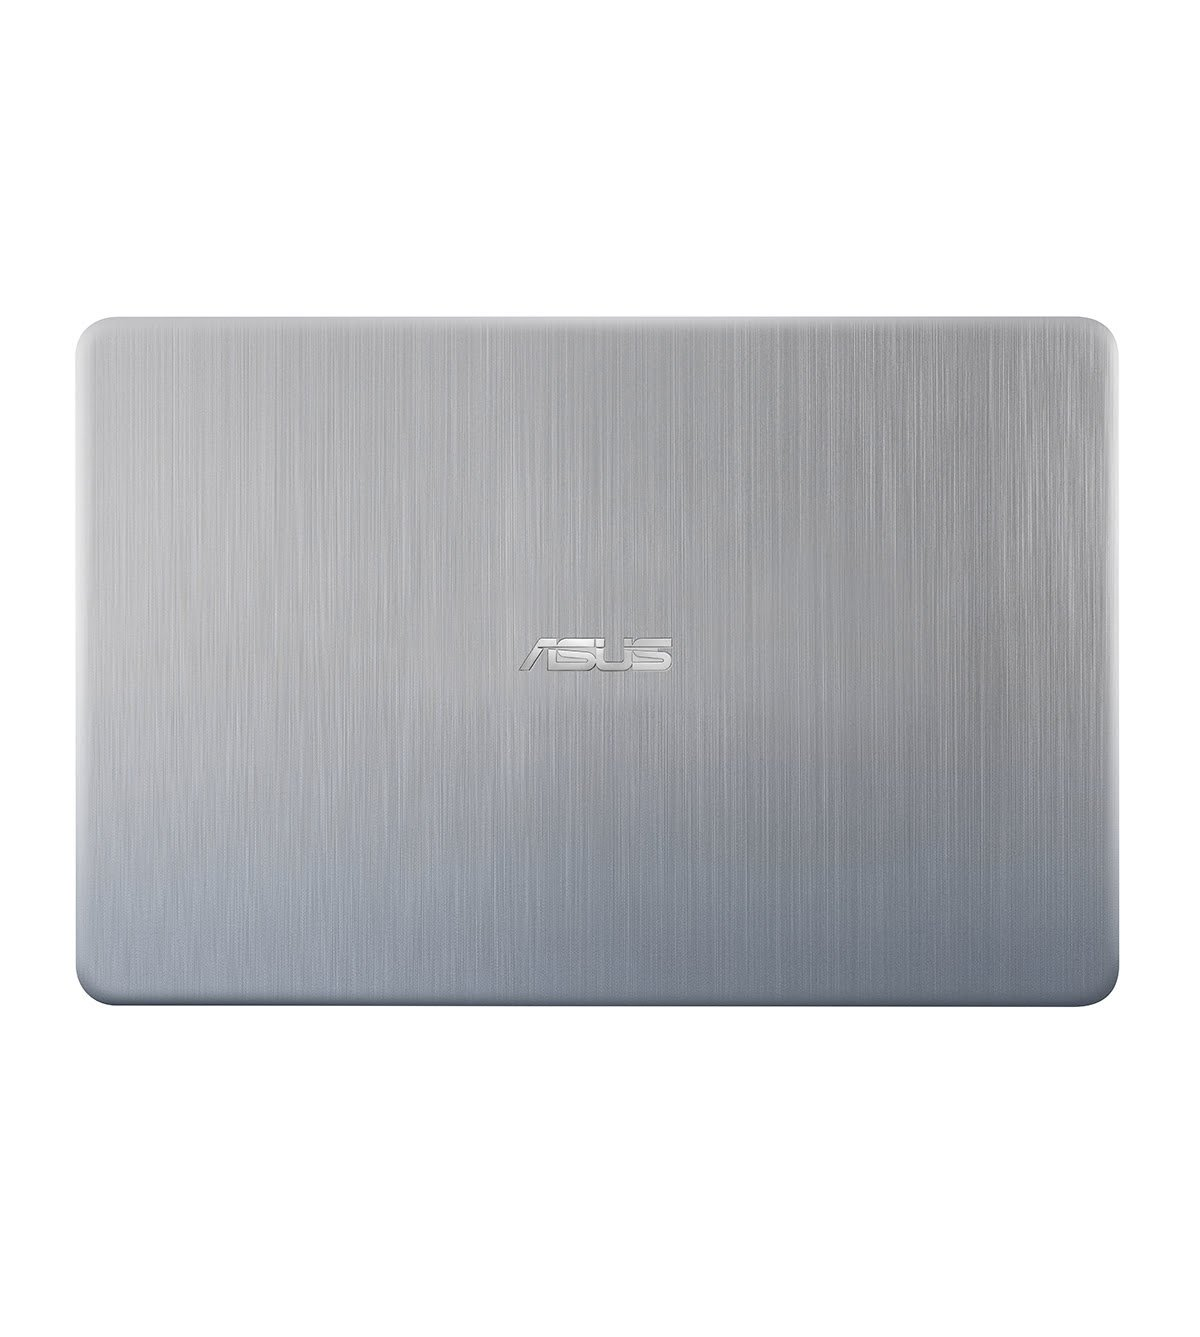 Asus 90NB0B03-M25310 - PC portable Asus - Cybertek.fr - 1